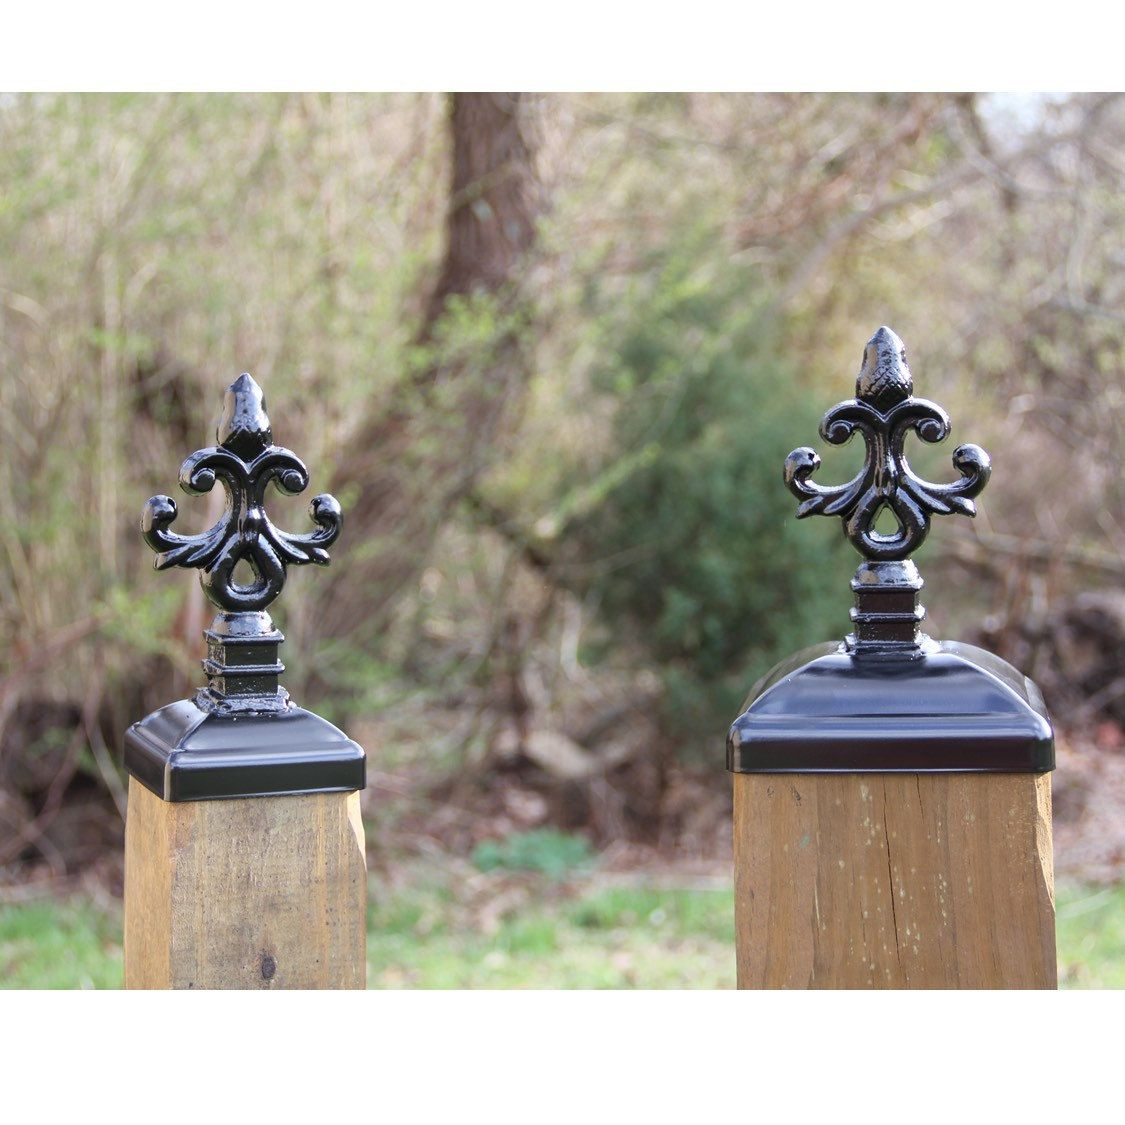 6x6 Wrought Iron Post Cap For Wood 6x6 Post Large Nottingham Acorn Design Wood Fence Post Wood Post Metal Art Decor